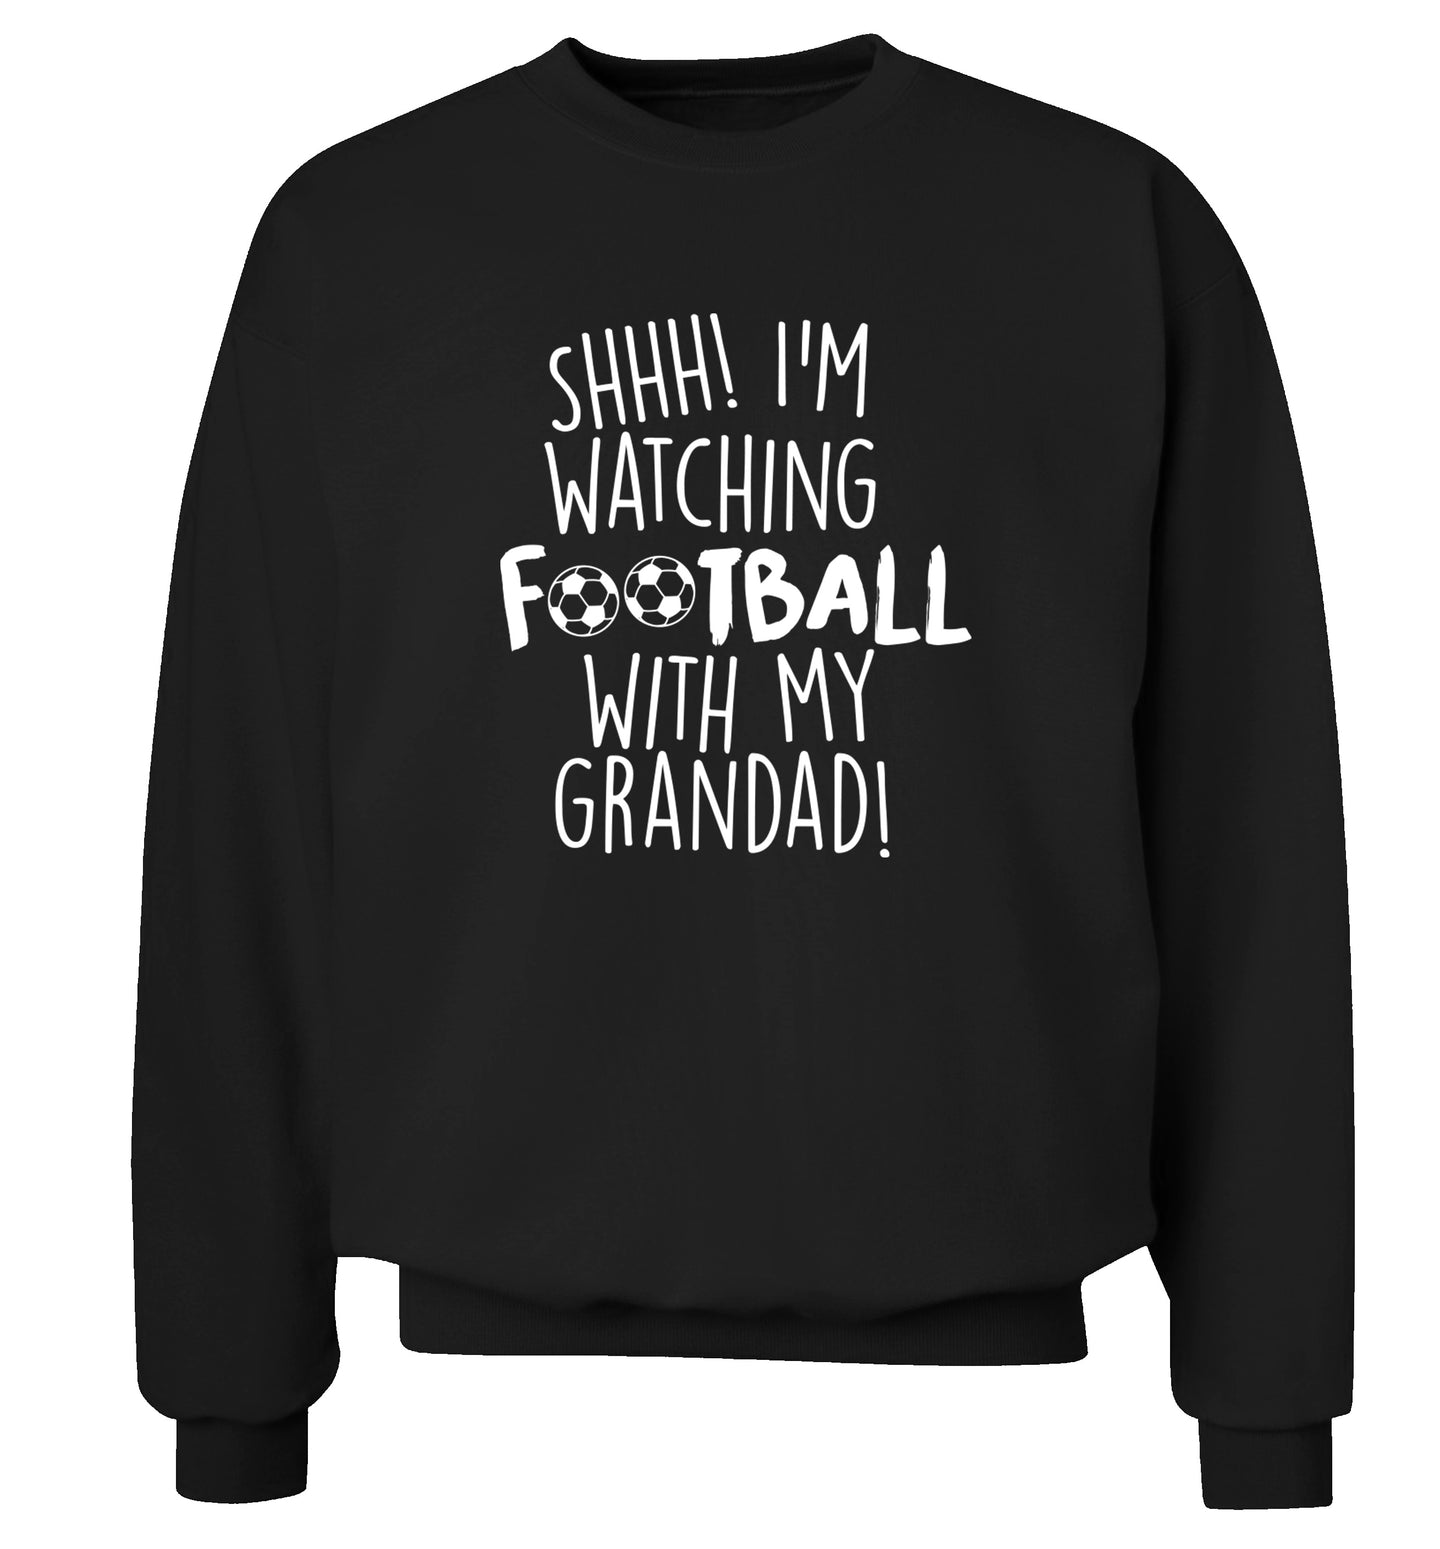 Shhh I'm watching football with my grandad Adult's unisexblack Sweater 2XL